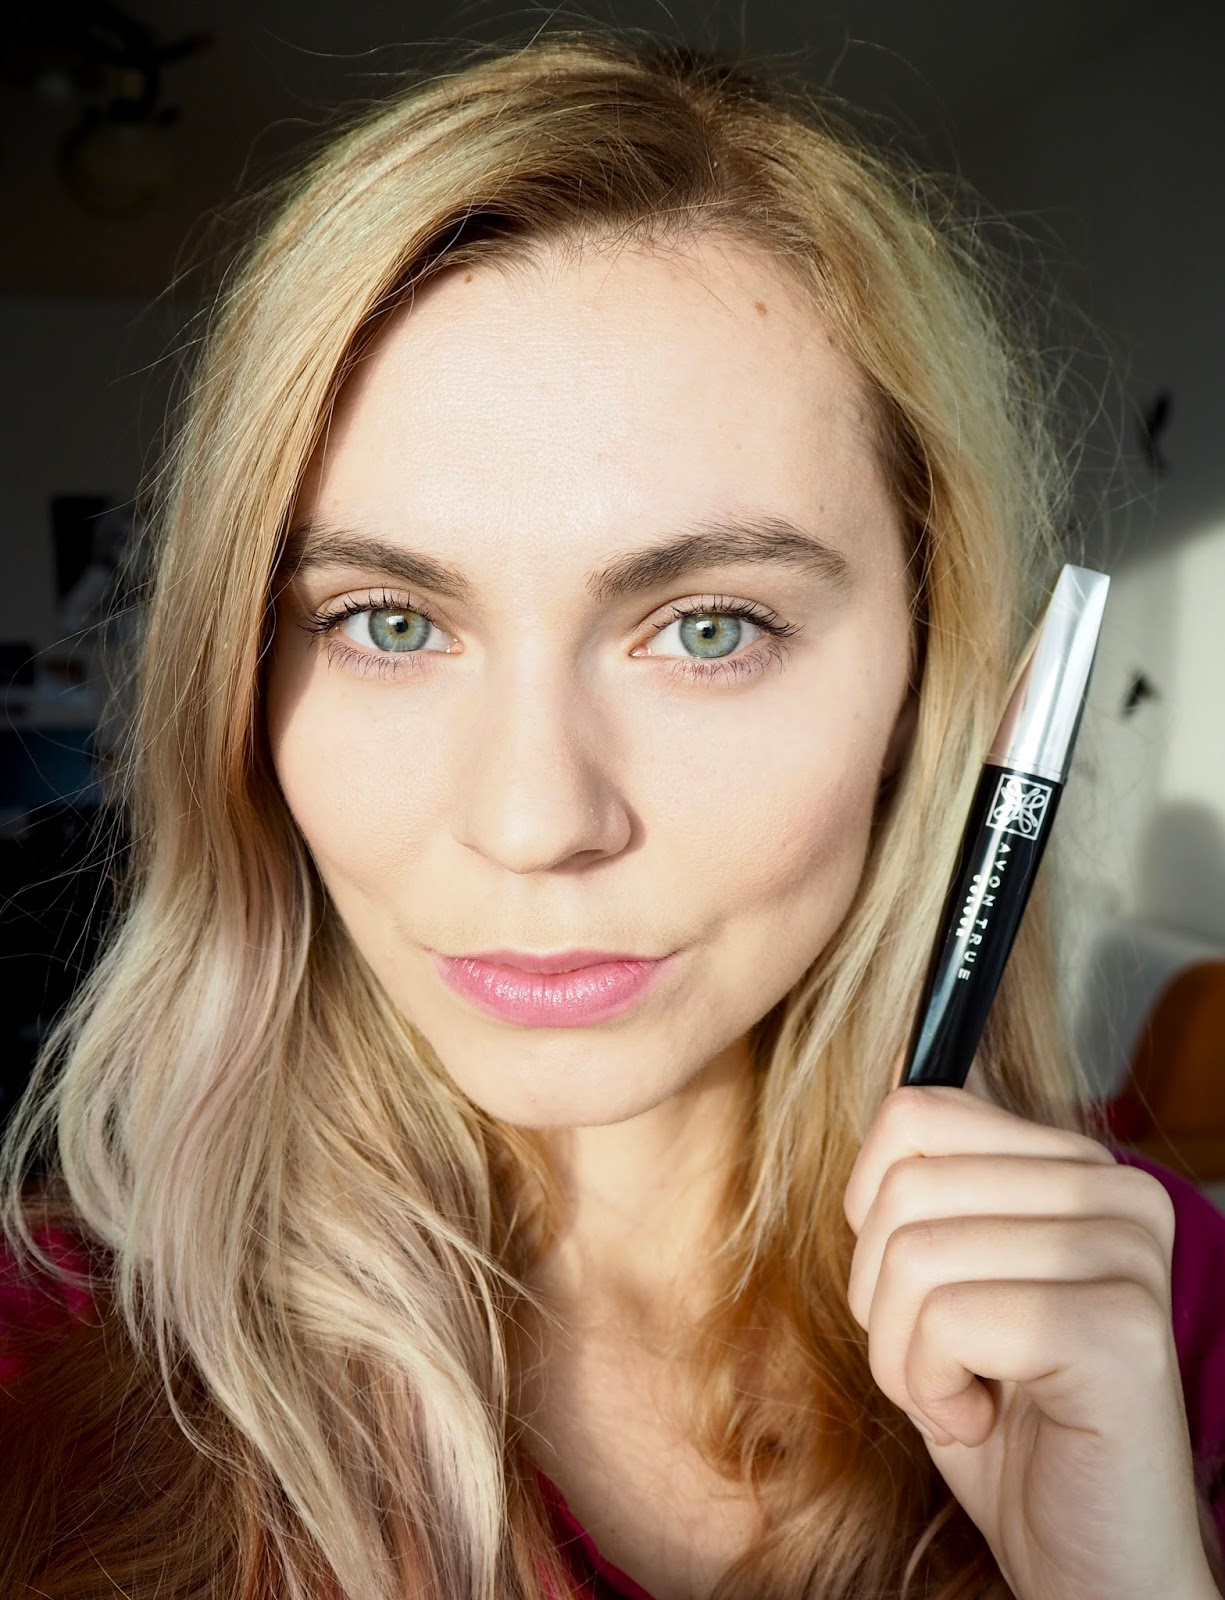 slovak beauty blogger